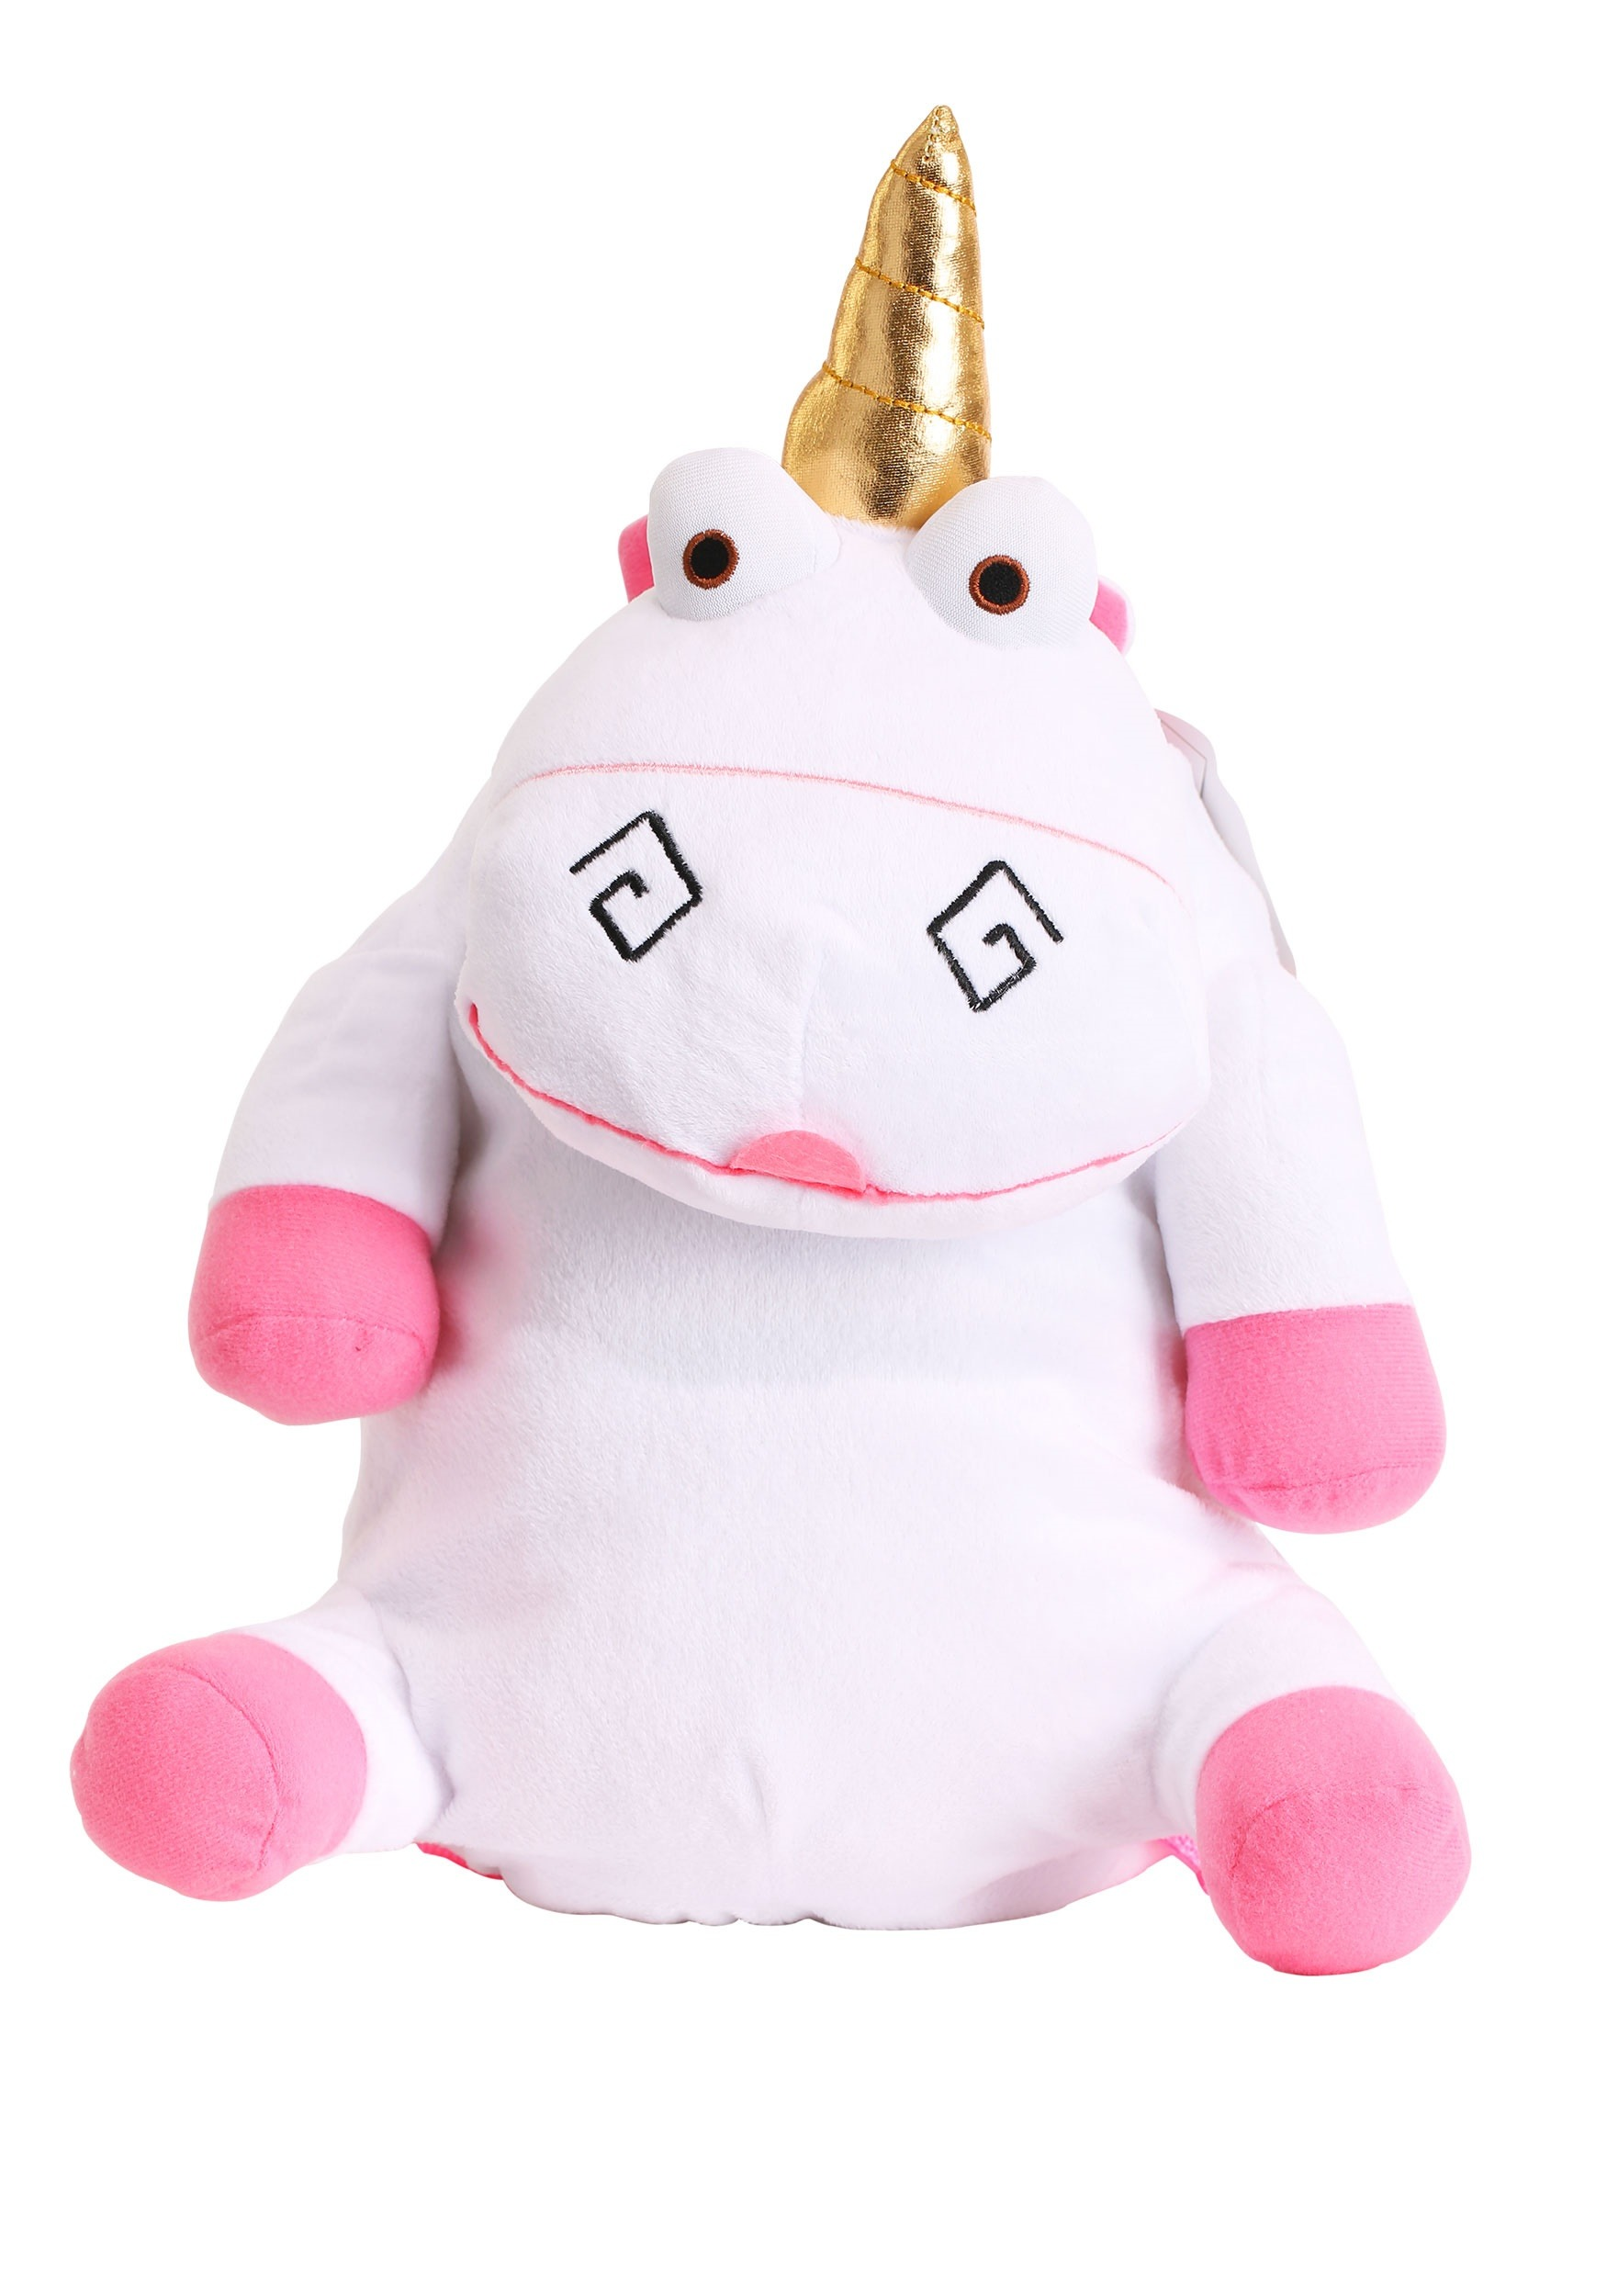 Despicable Me Kid's Fluffy Unicorn Plush Backpack